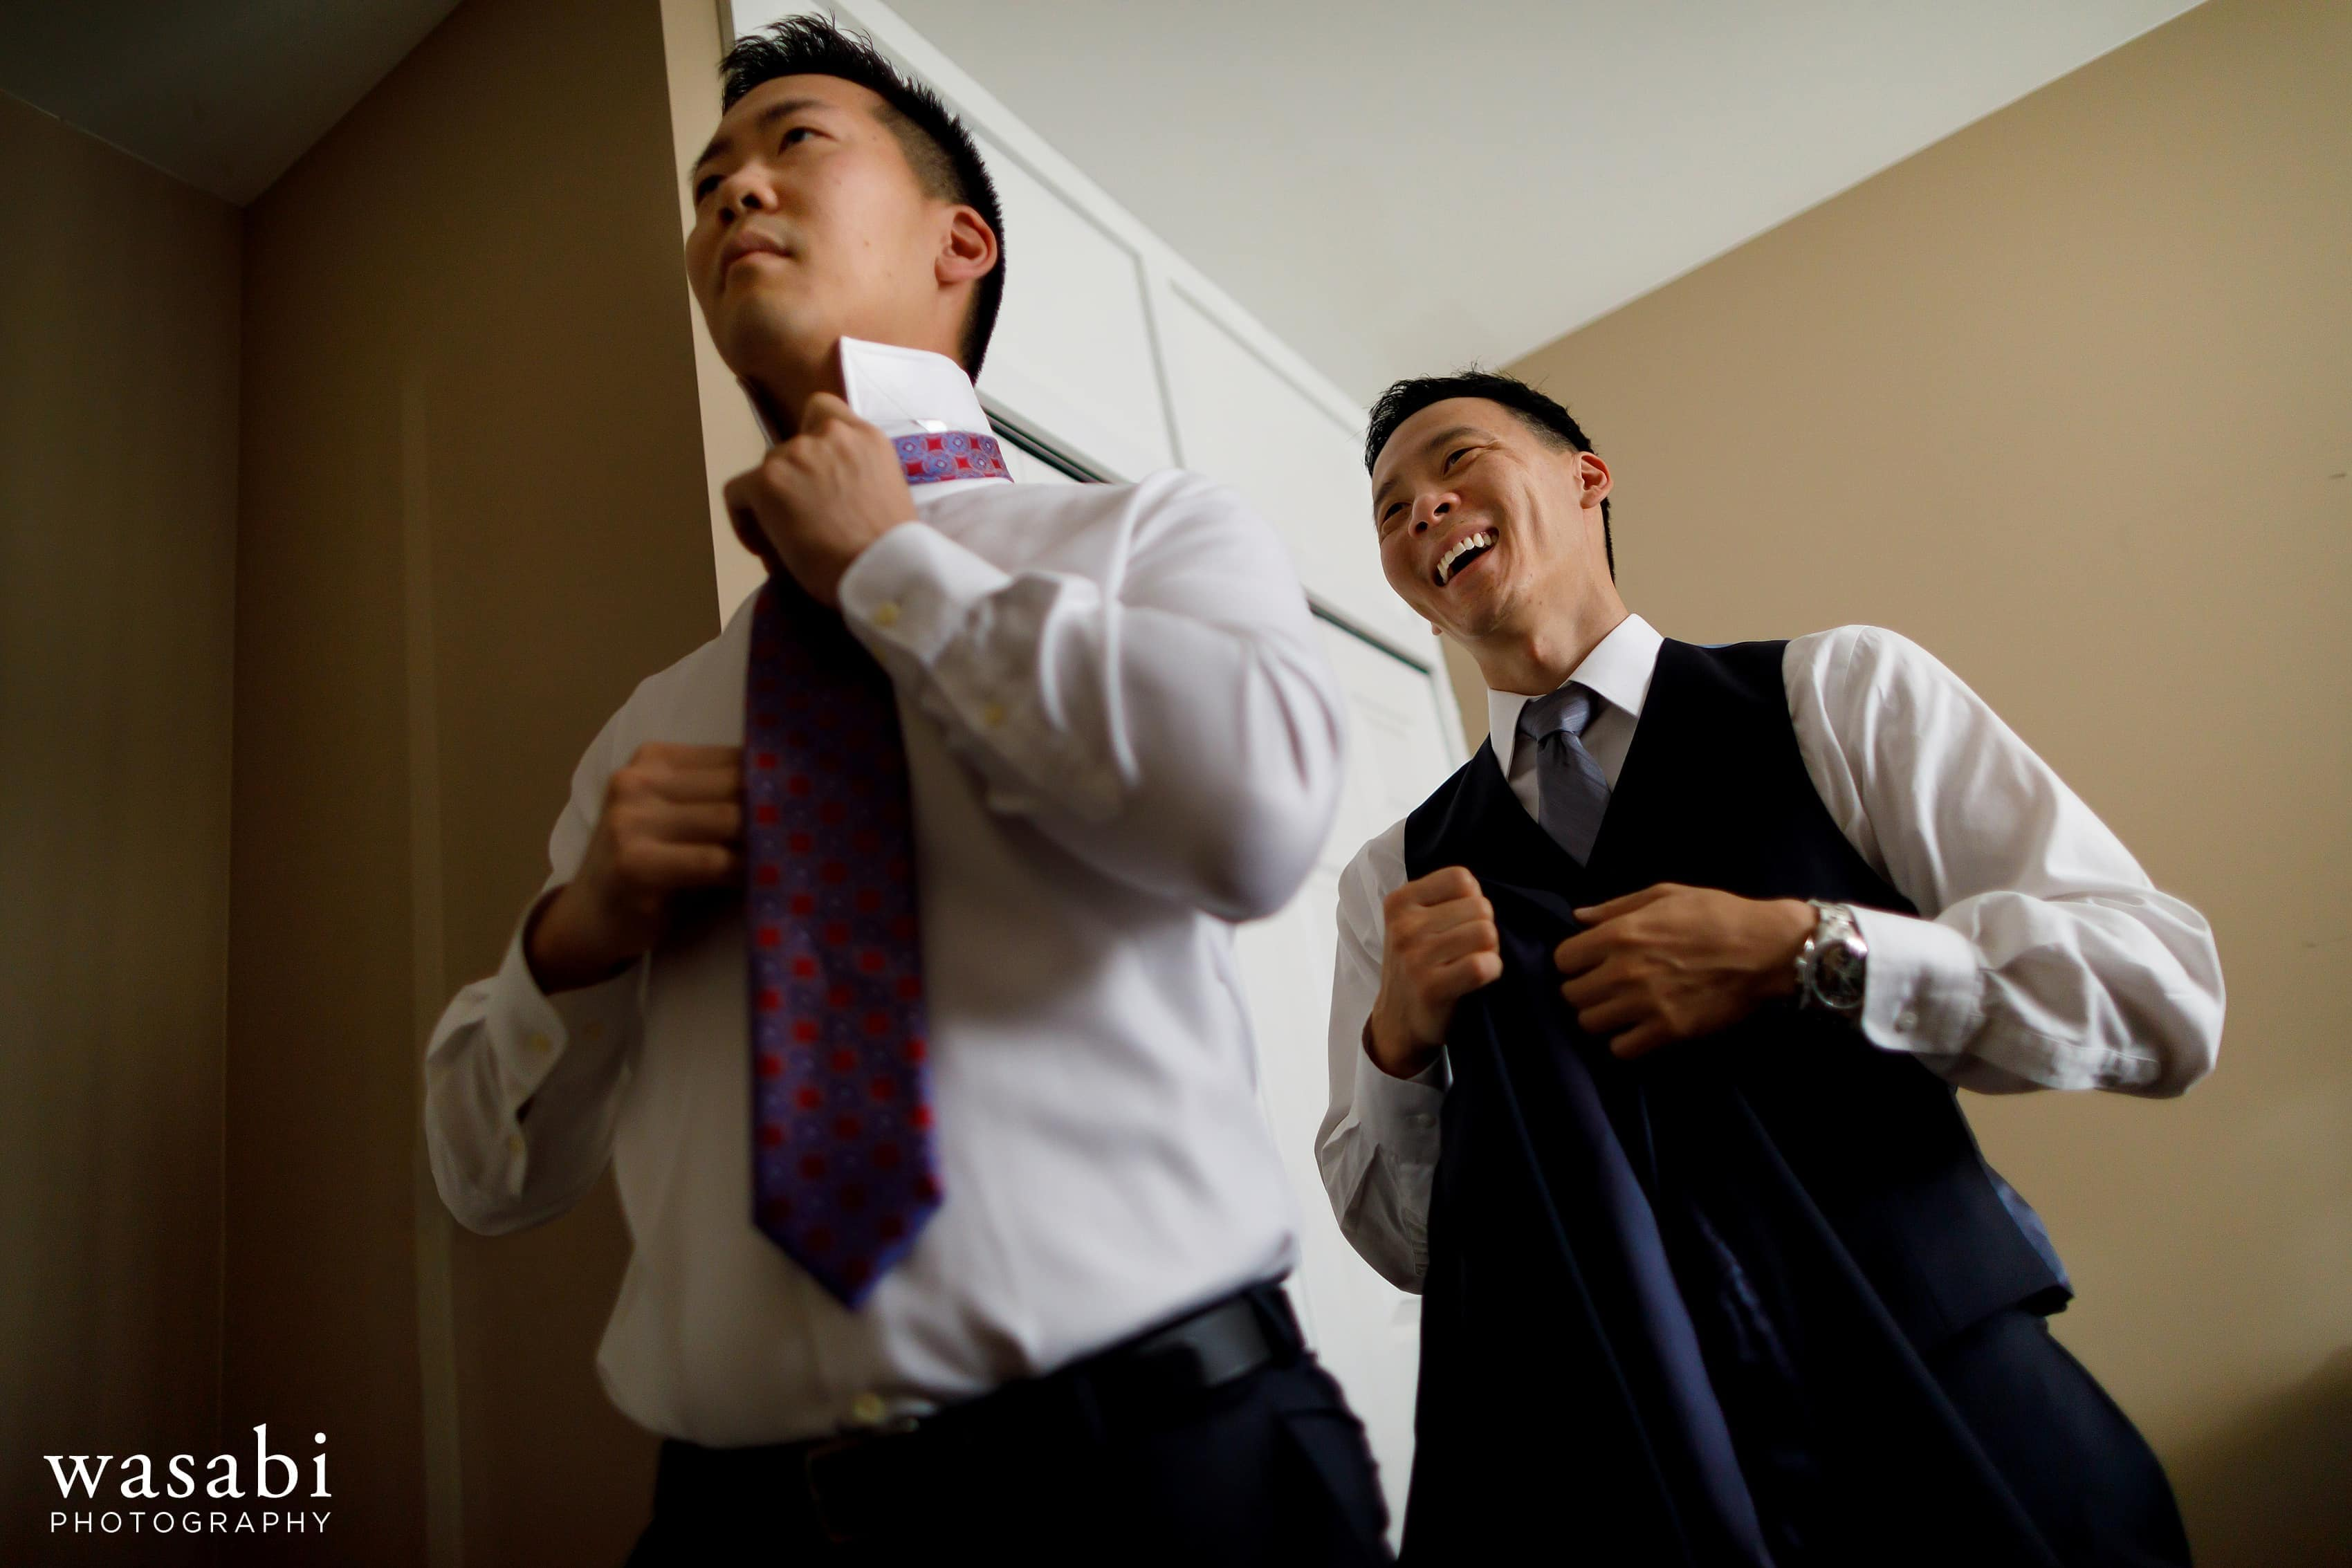 groom and best man laugh while adjusting ties and getting ready for wedding